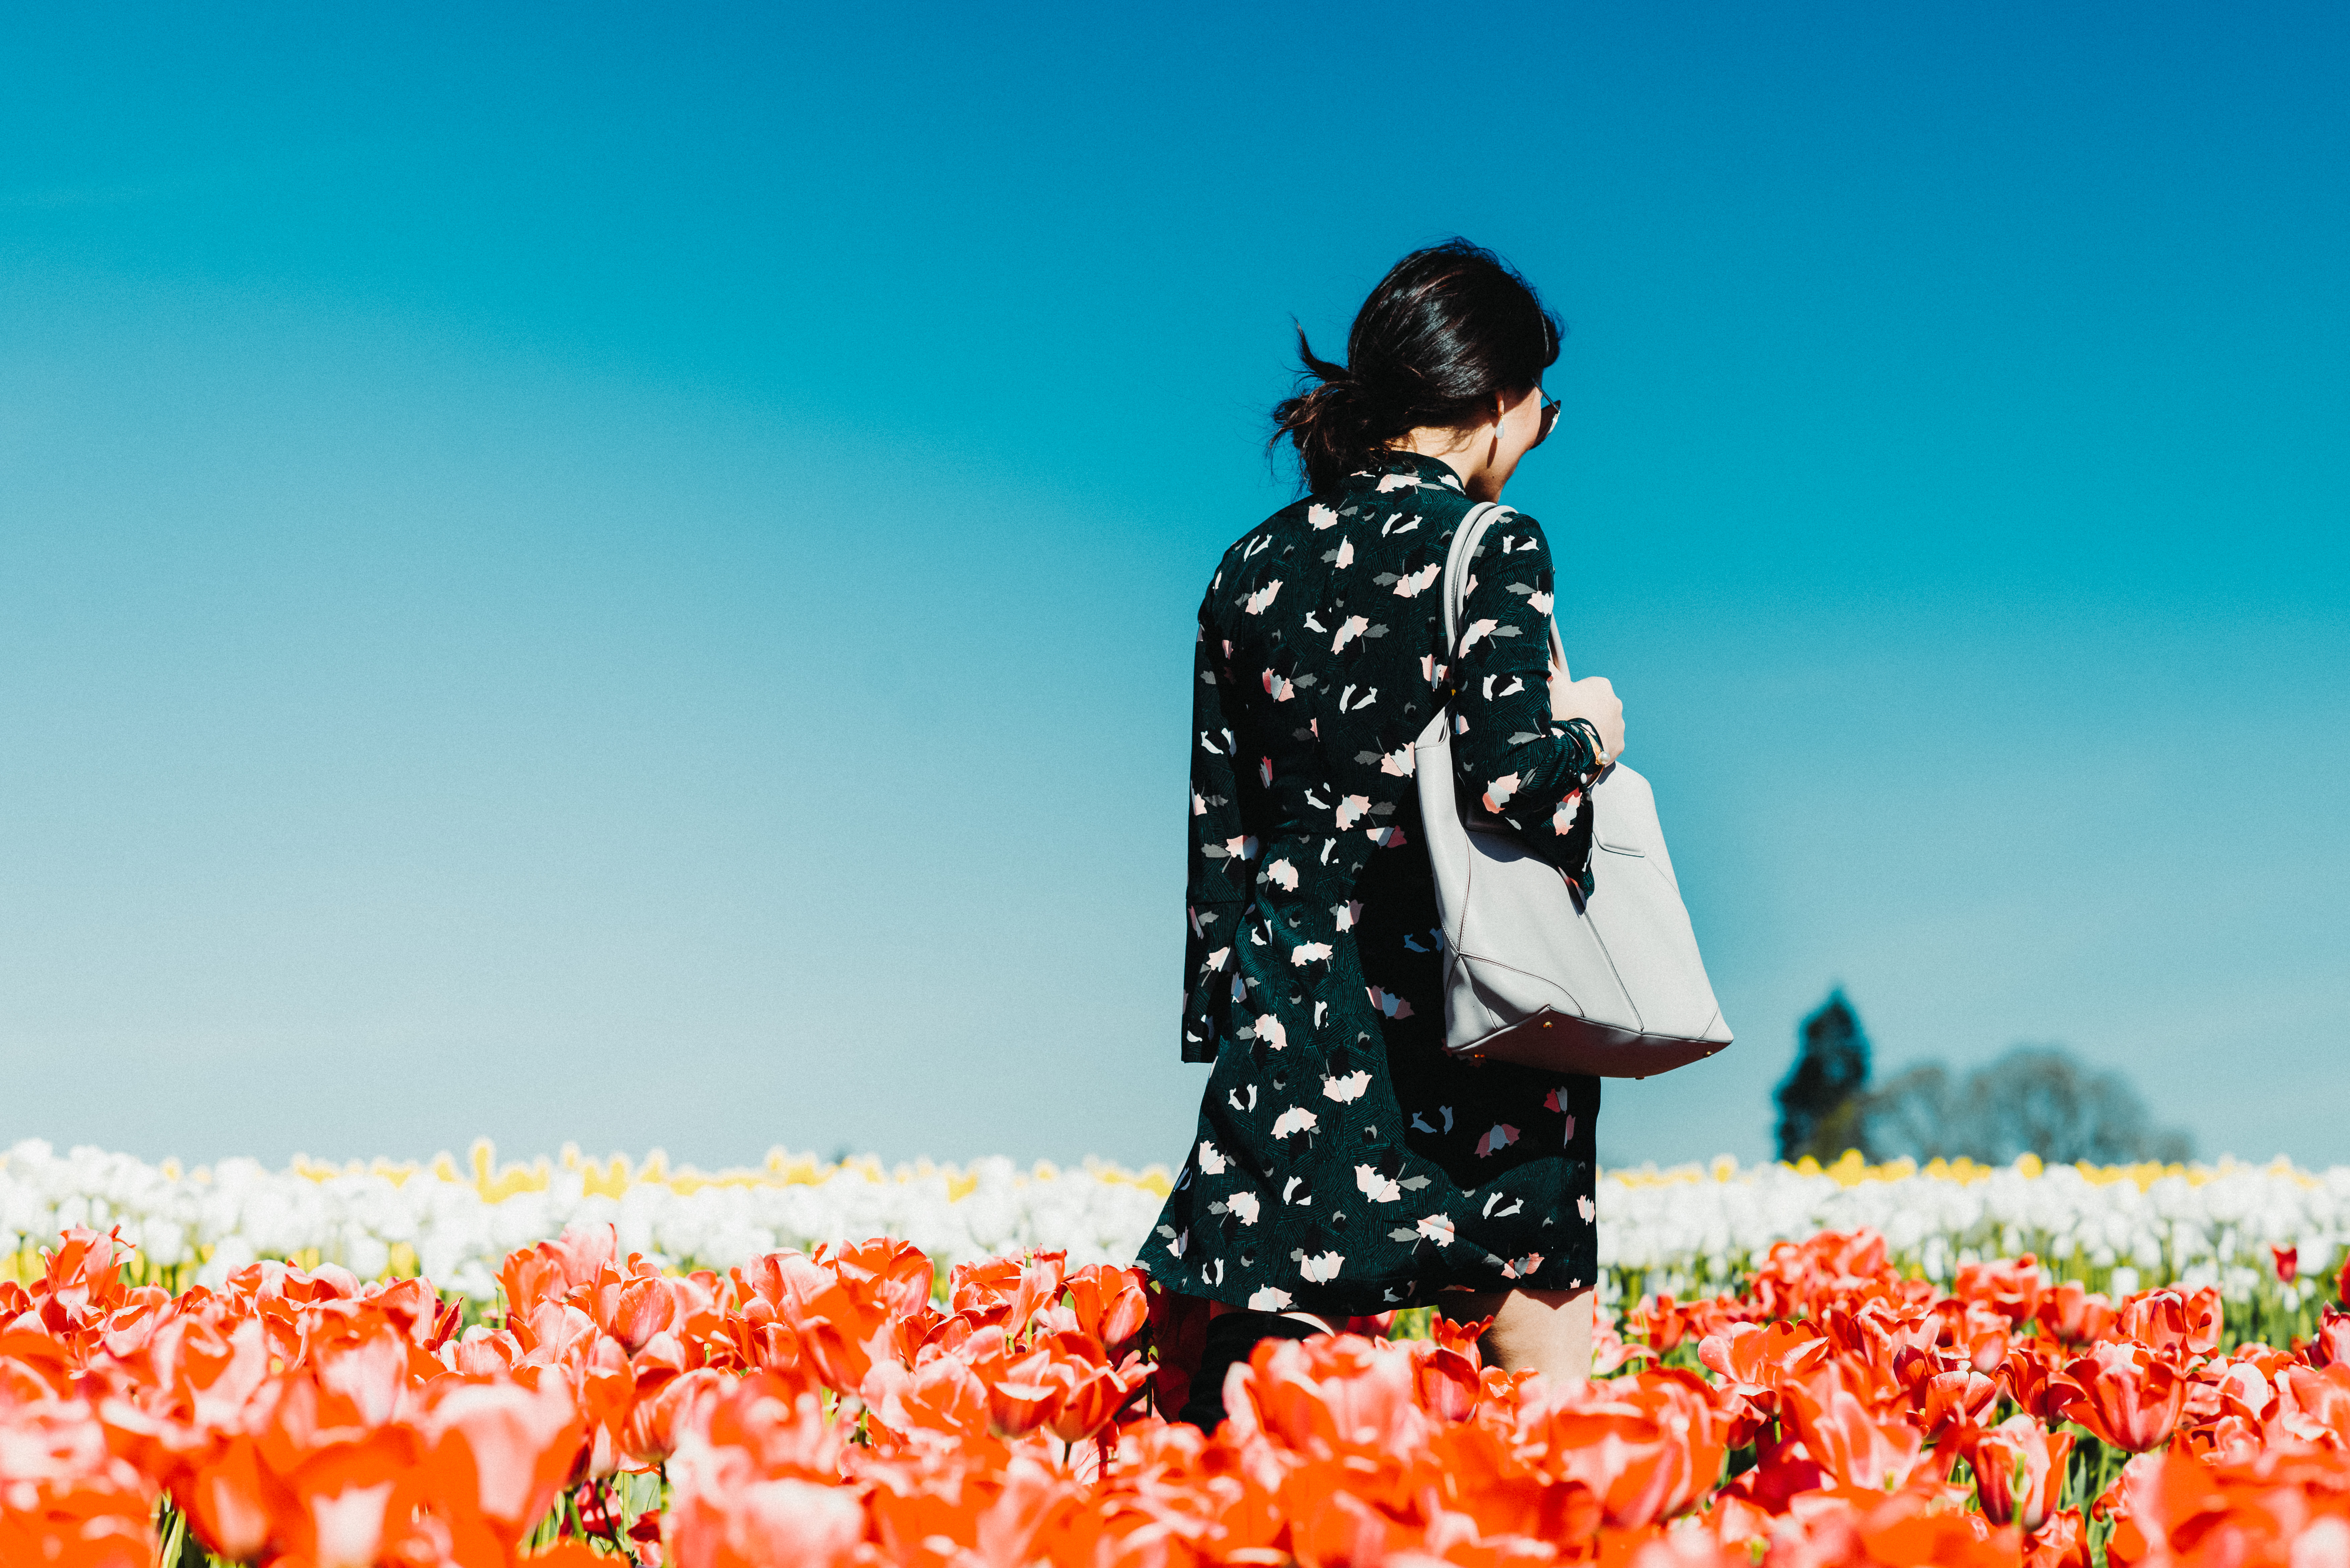 Dancing with Tulips